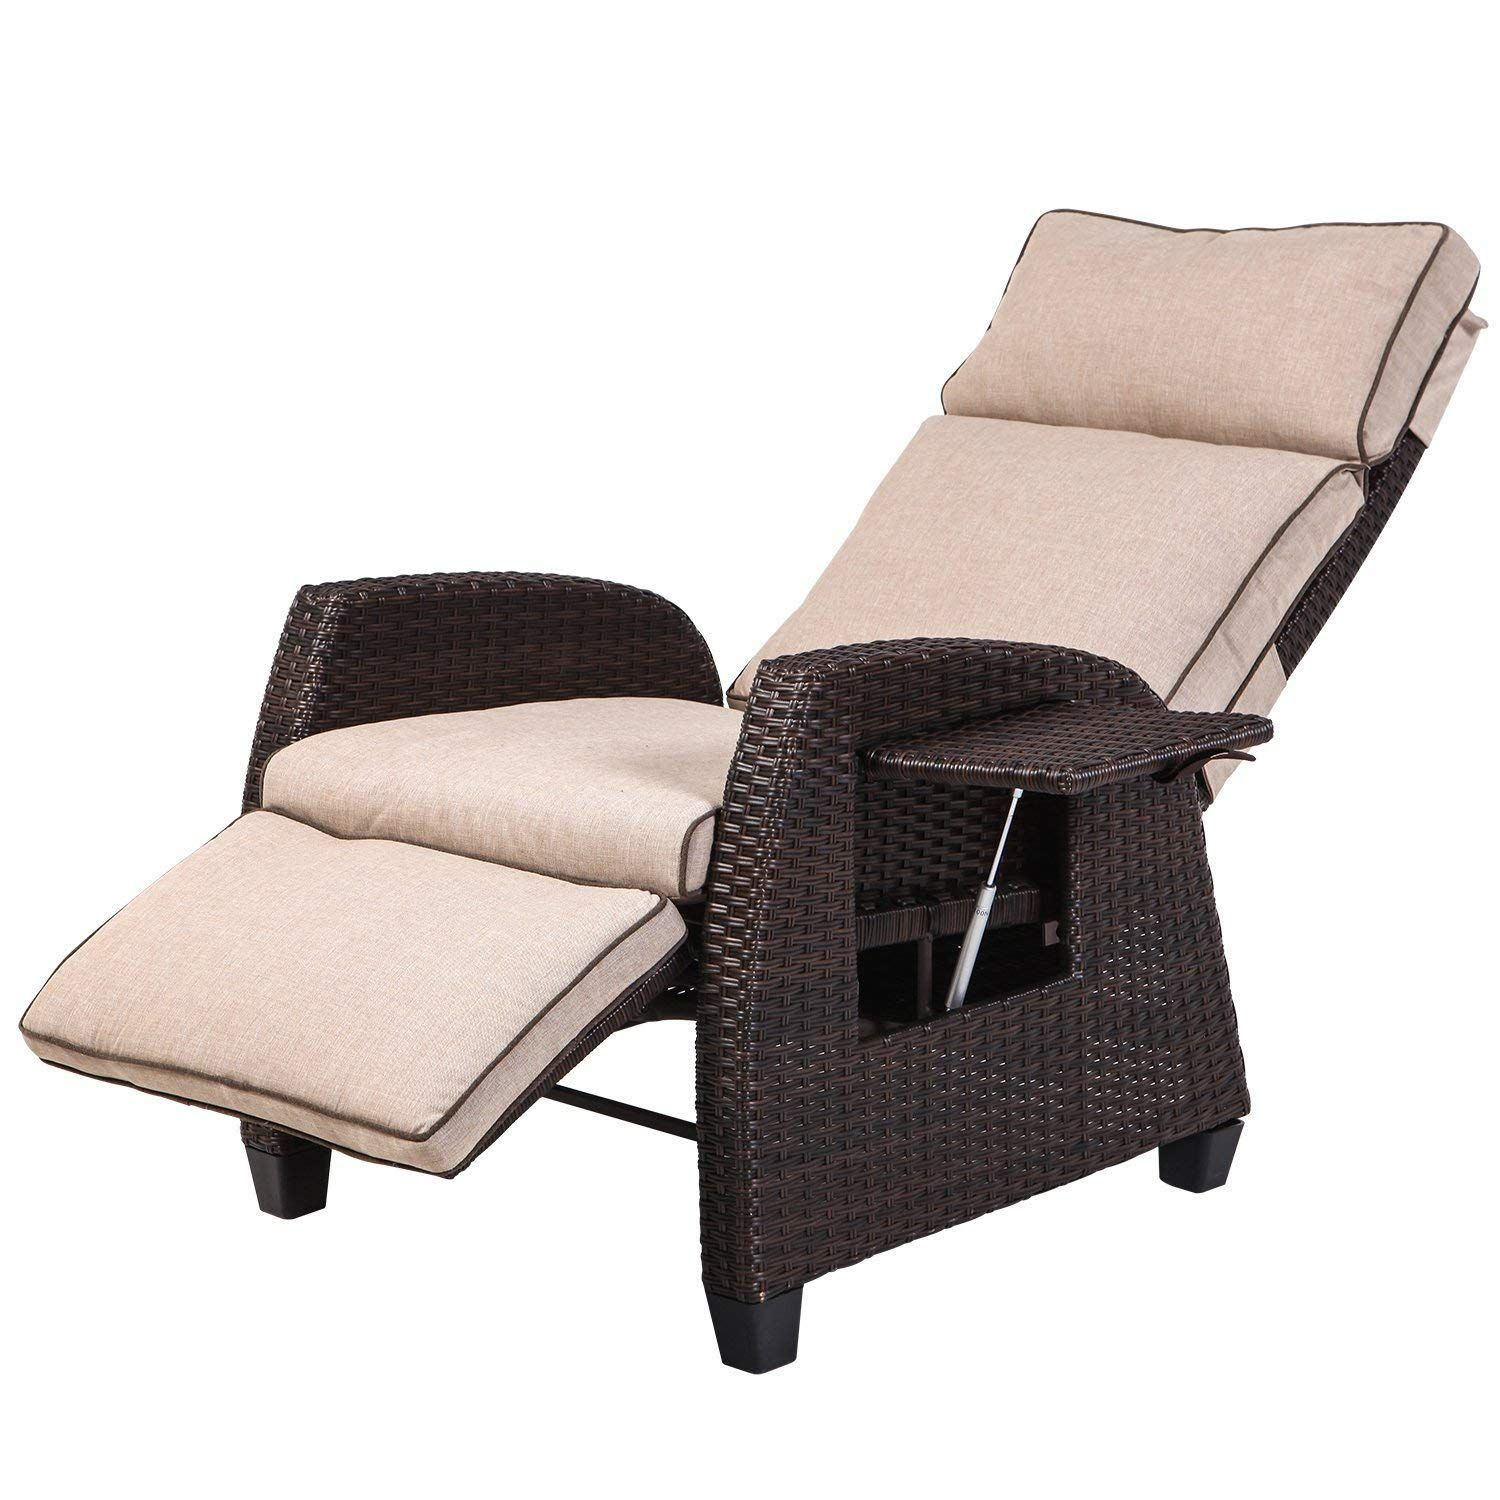 Lch Adjustable Recliner Relaxing Sofa Chair Outdoor Wicker